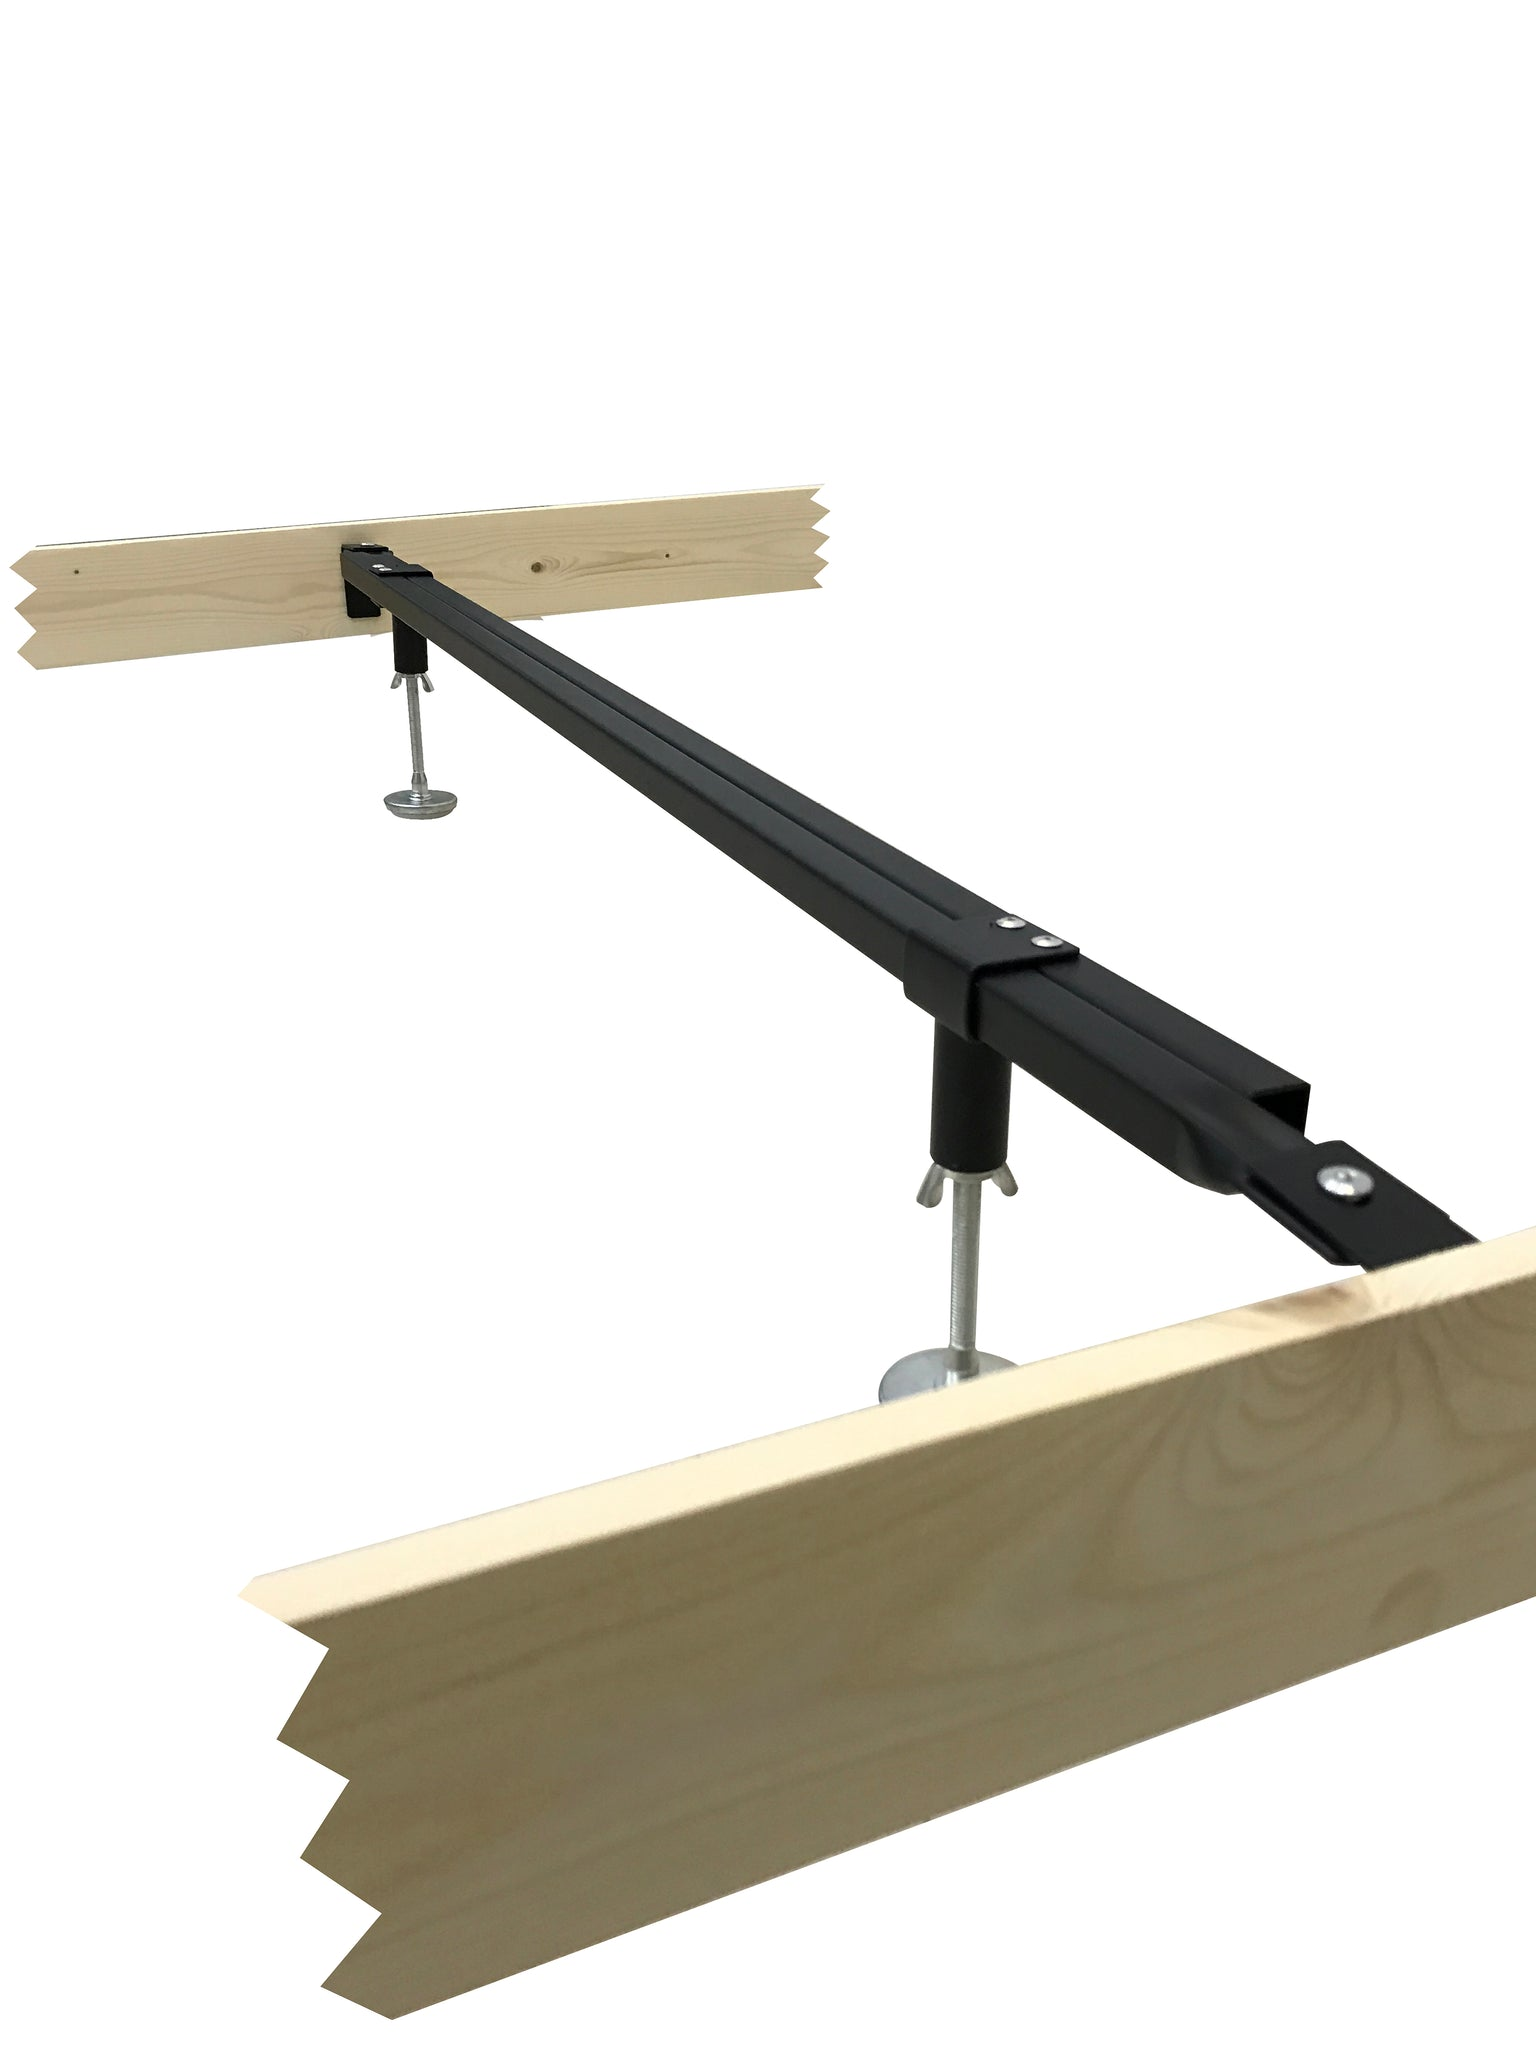 Metal Heavy Duty Center Support Rail System For Bed Frame